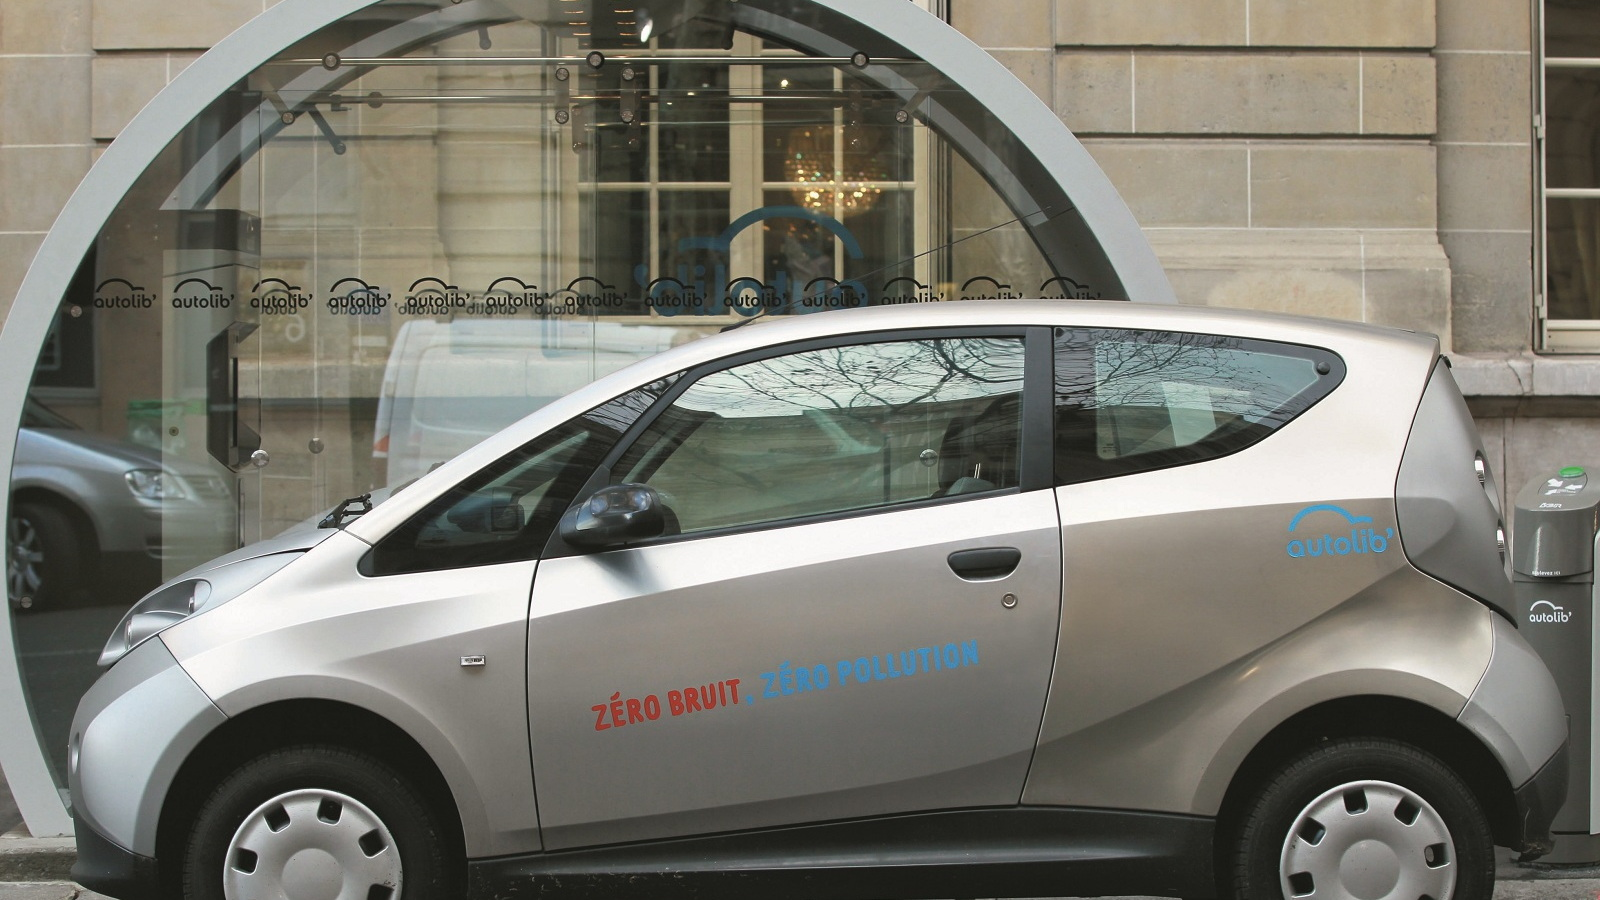 Bolloré BlueCar electric car used for Autolib' car-sharing service in Paris, September 2012